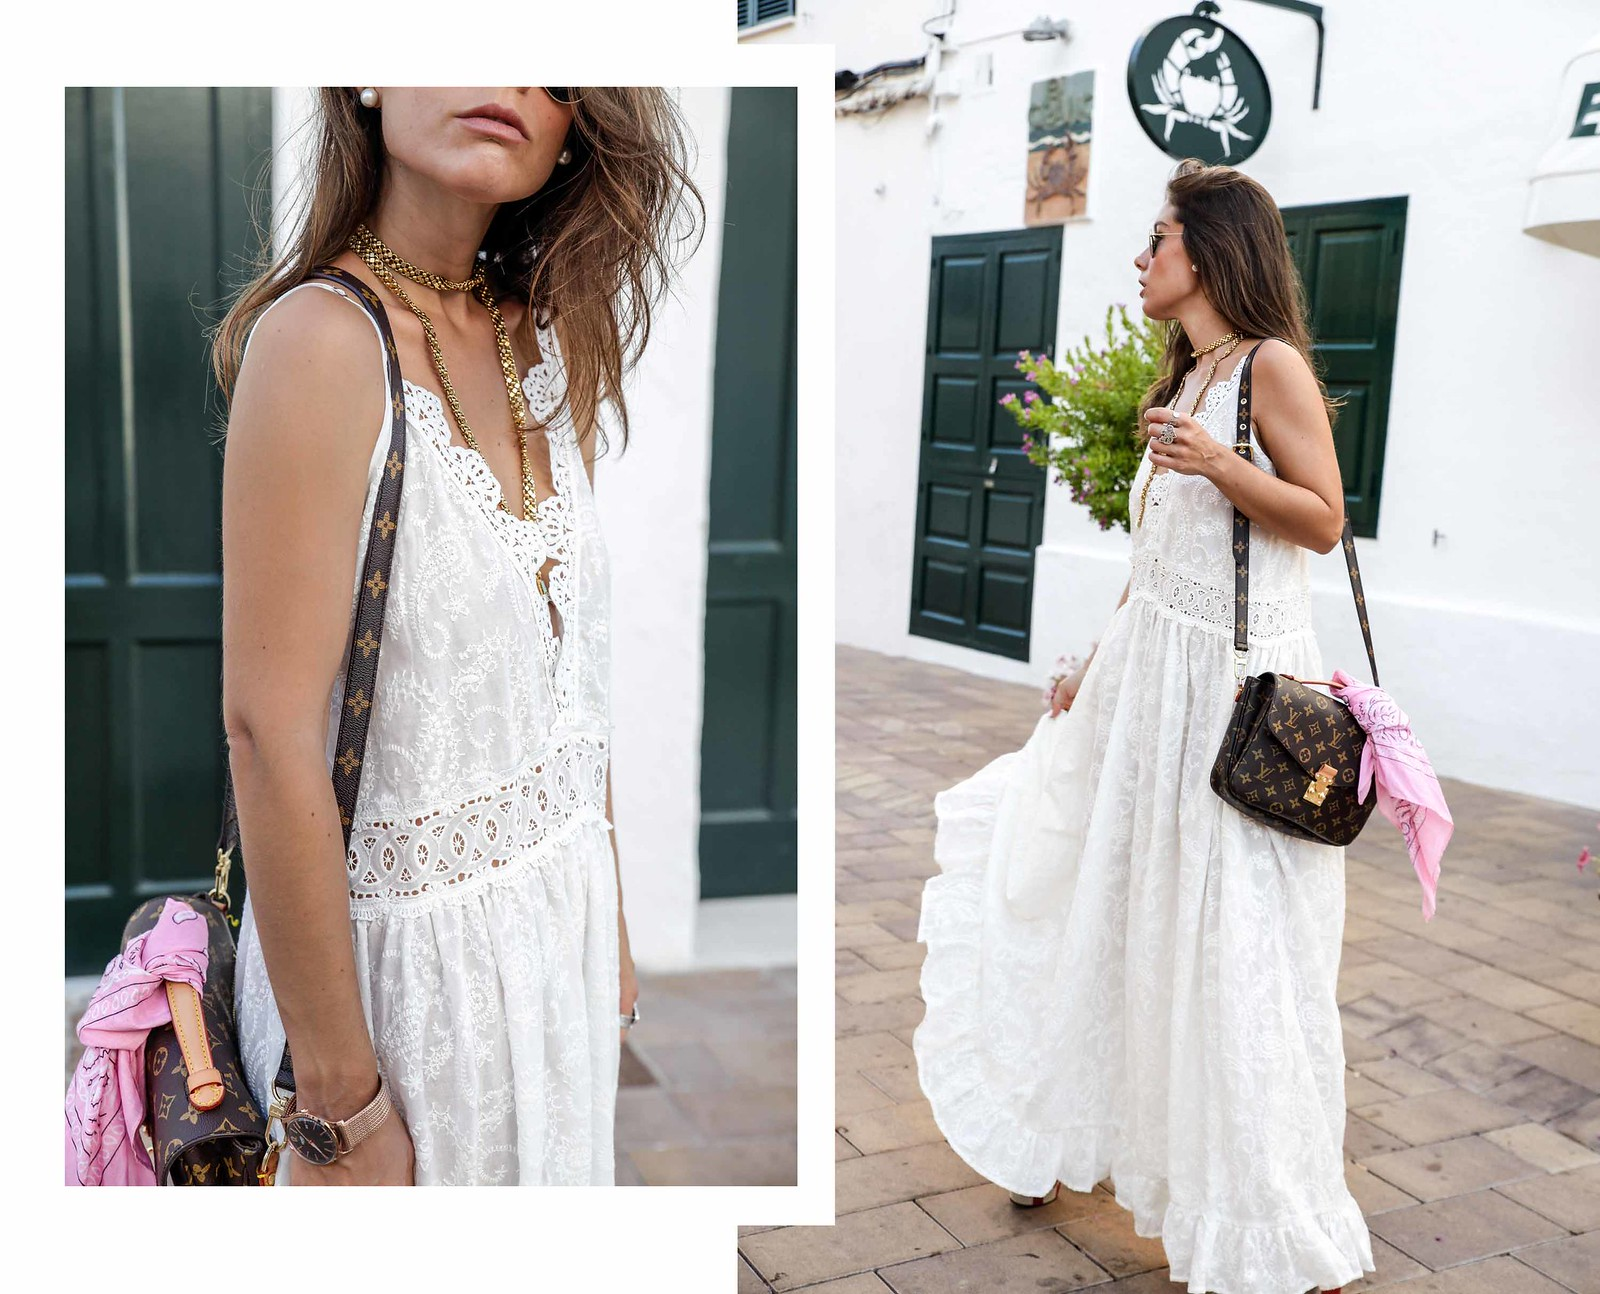 04_vestido_blanco_ibizenco_miss_june_long_dress_outfit_rayban_louis_vuitton_bag_outfit_streetstyle_influencer_barcelona_theguestgirl_the_guest_girl_barcelona_influencer